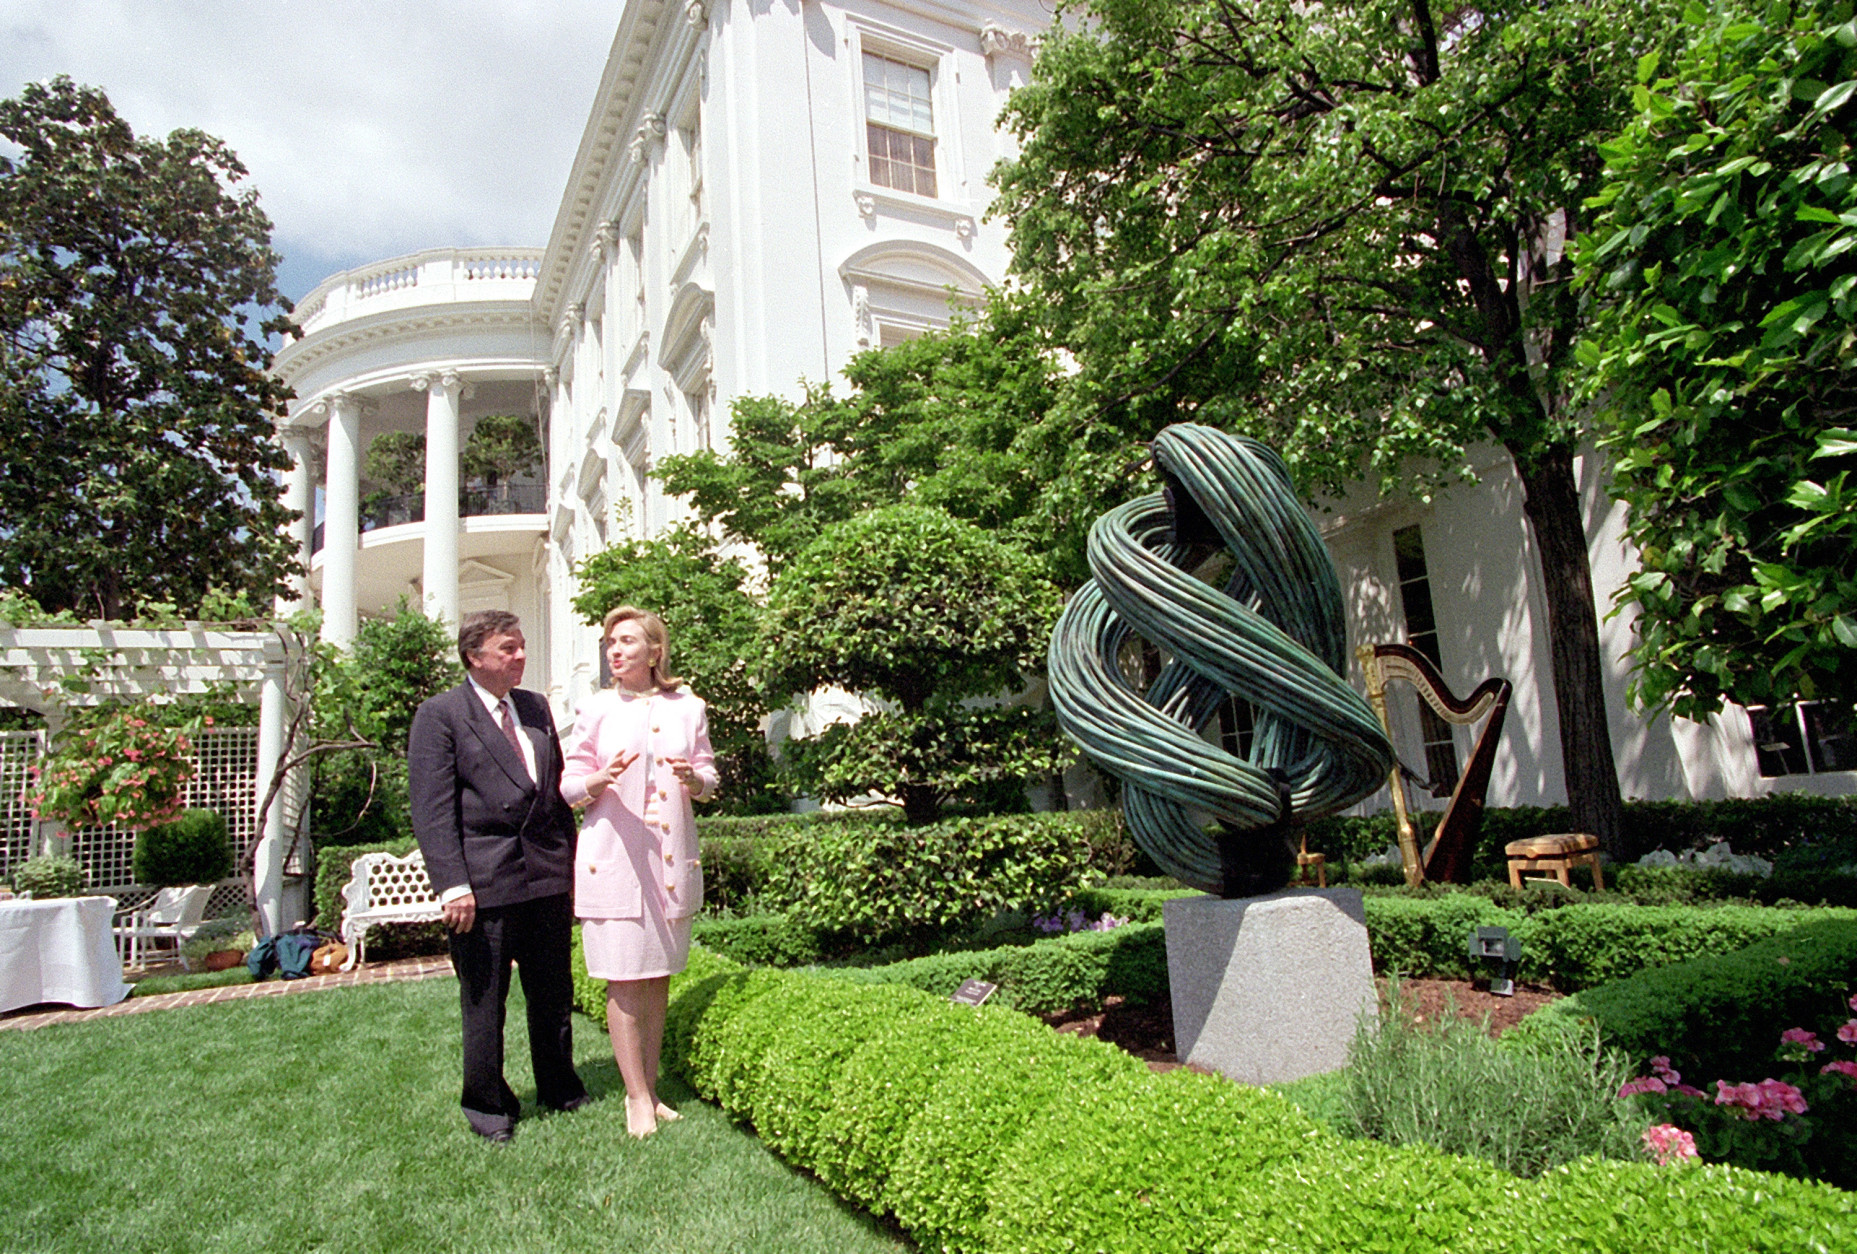 Hillary Clinton in the White House Sculpture Garden she created. (WTOP)